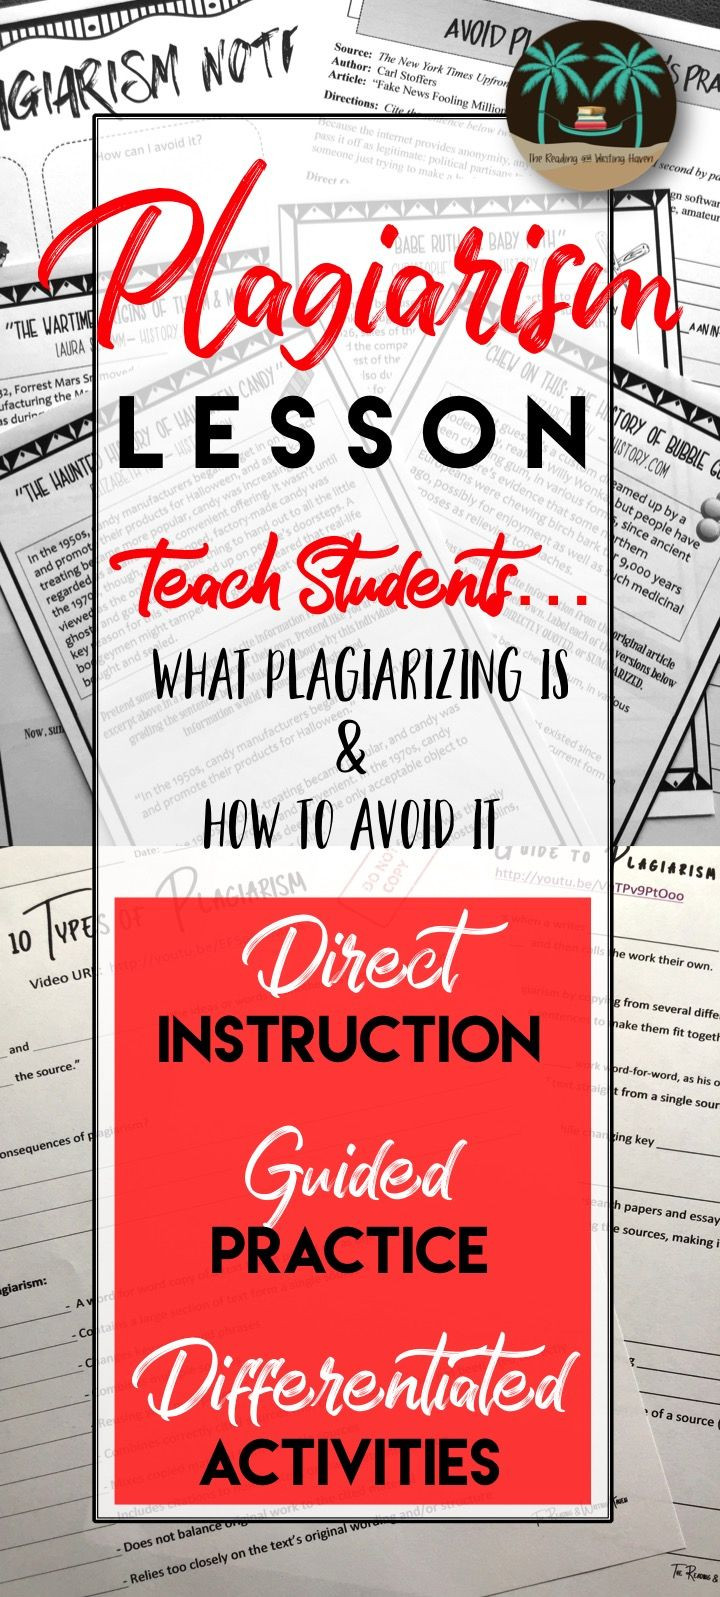 Plagiarism Worksheet High School Avoiding Plagiarism Unit Engaging Plagiarism Lessons for